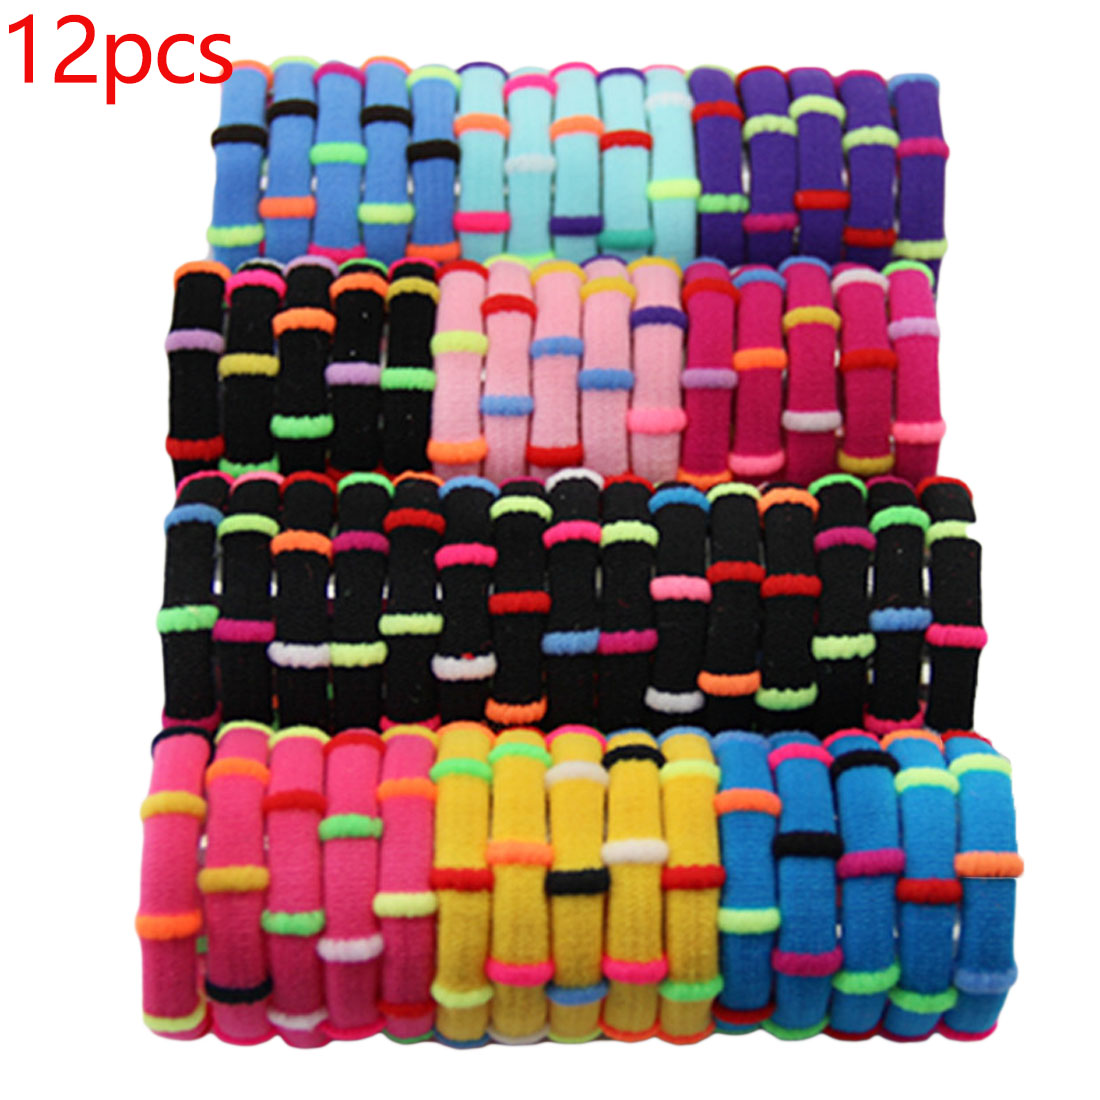 1pack=12pcs Colorful Girls Rubber Headbands Elastic Hair Bands Bamboo Joint Creative Hair Ring Gum Holder Hair Accessories